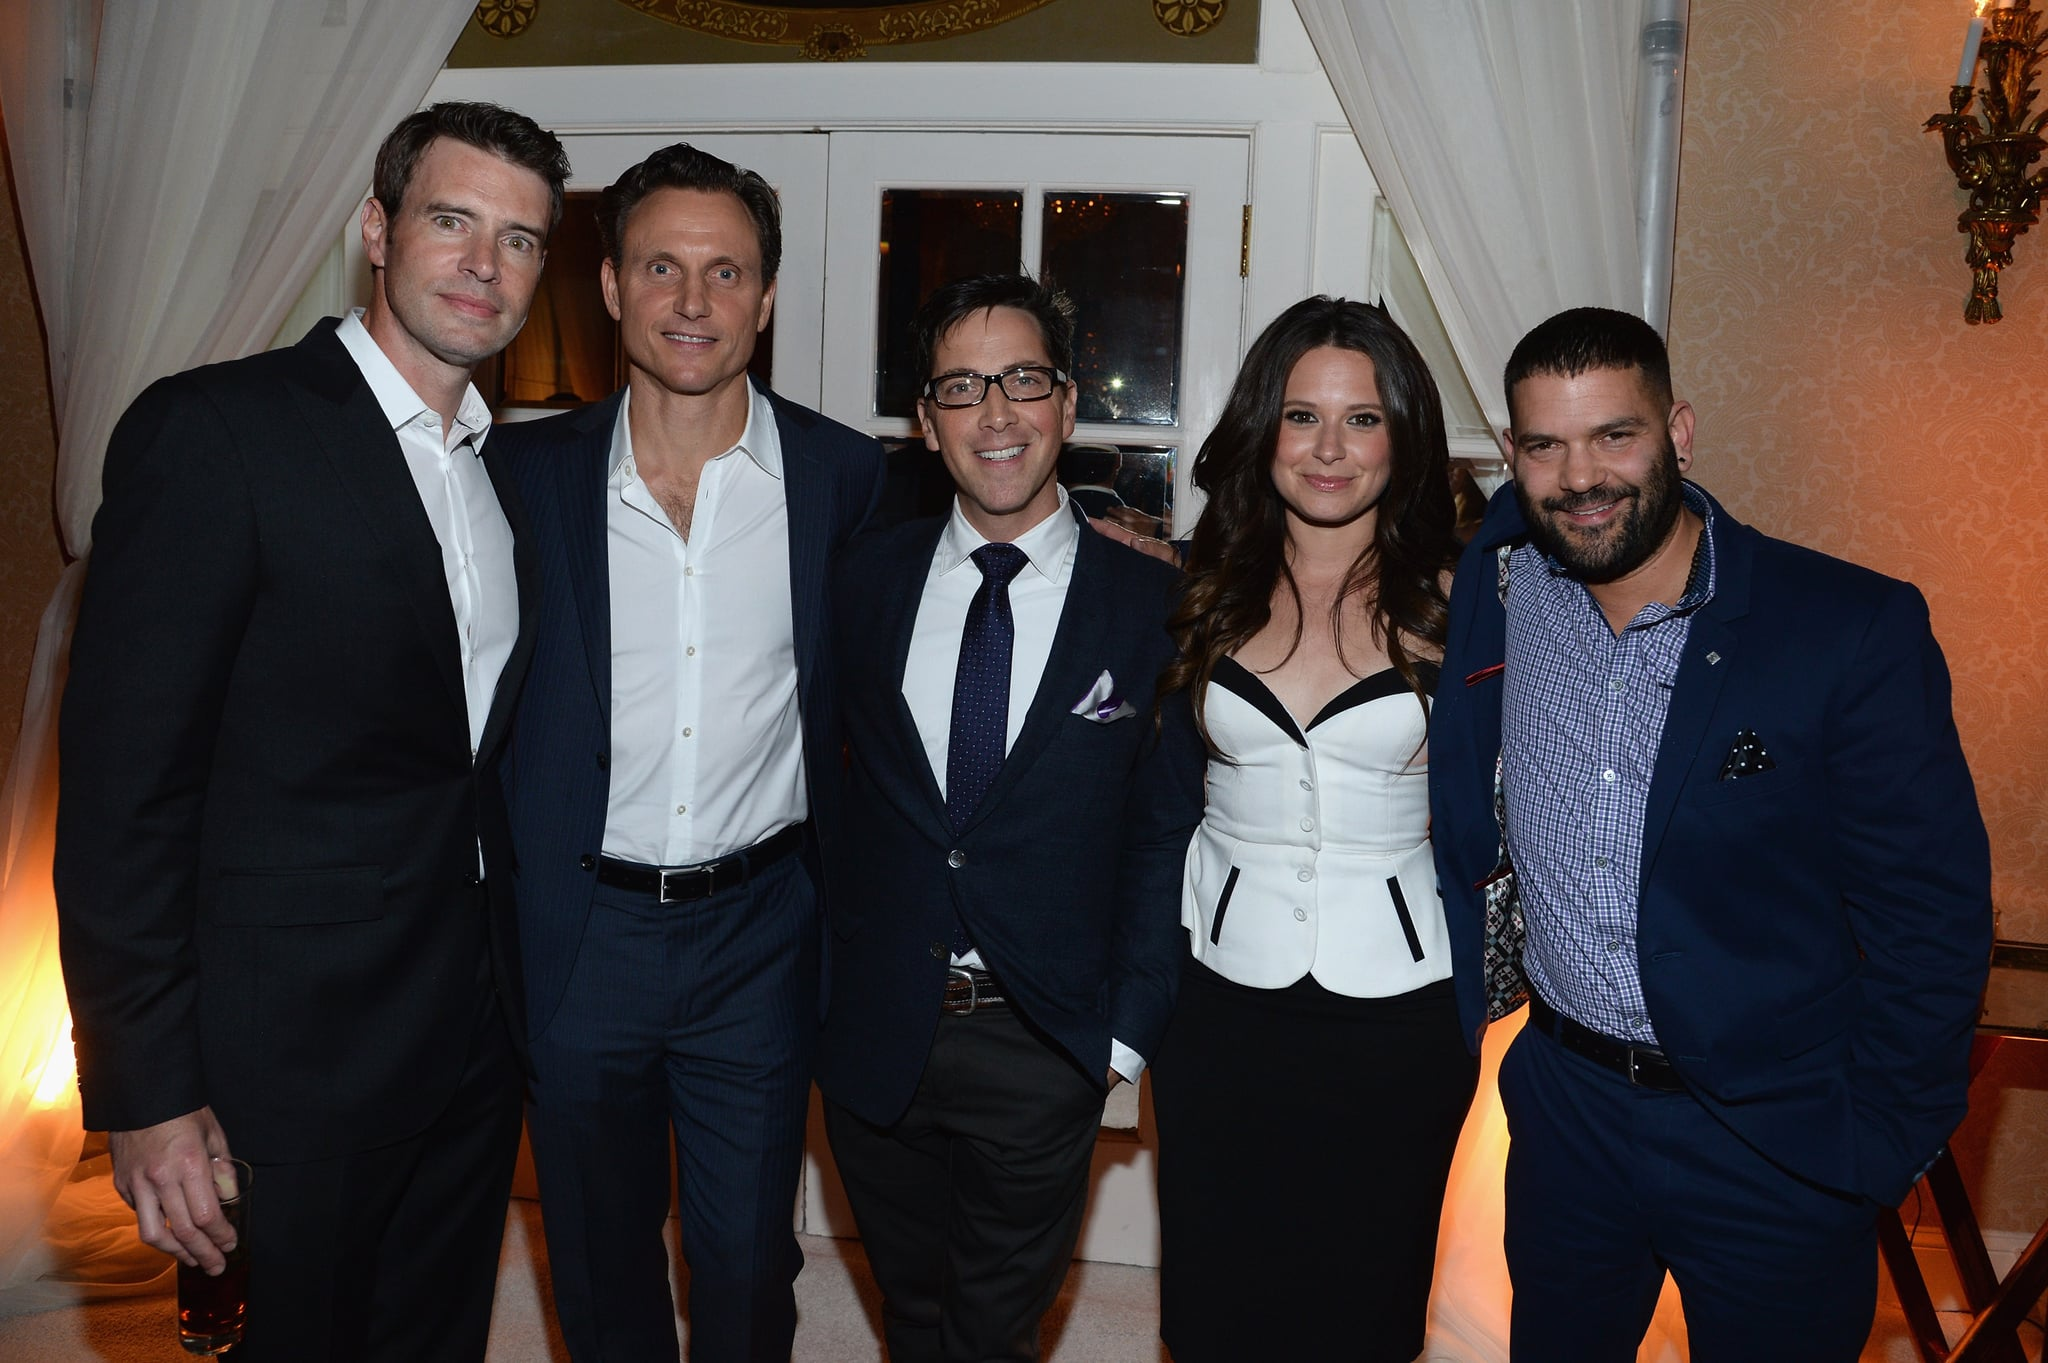 Scandal castmates Scott Foley, Tony Goldwyn, Dan Bucatinsky, Katie Lowes, and Guillermo Díaz gathered for a group photo at People and Time's event on Friday.